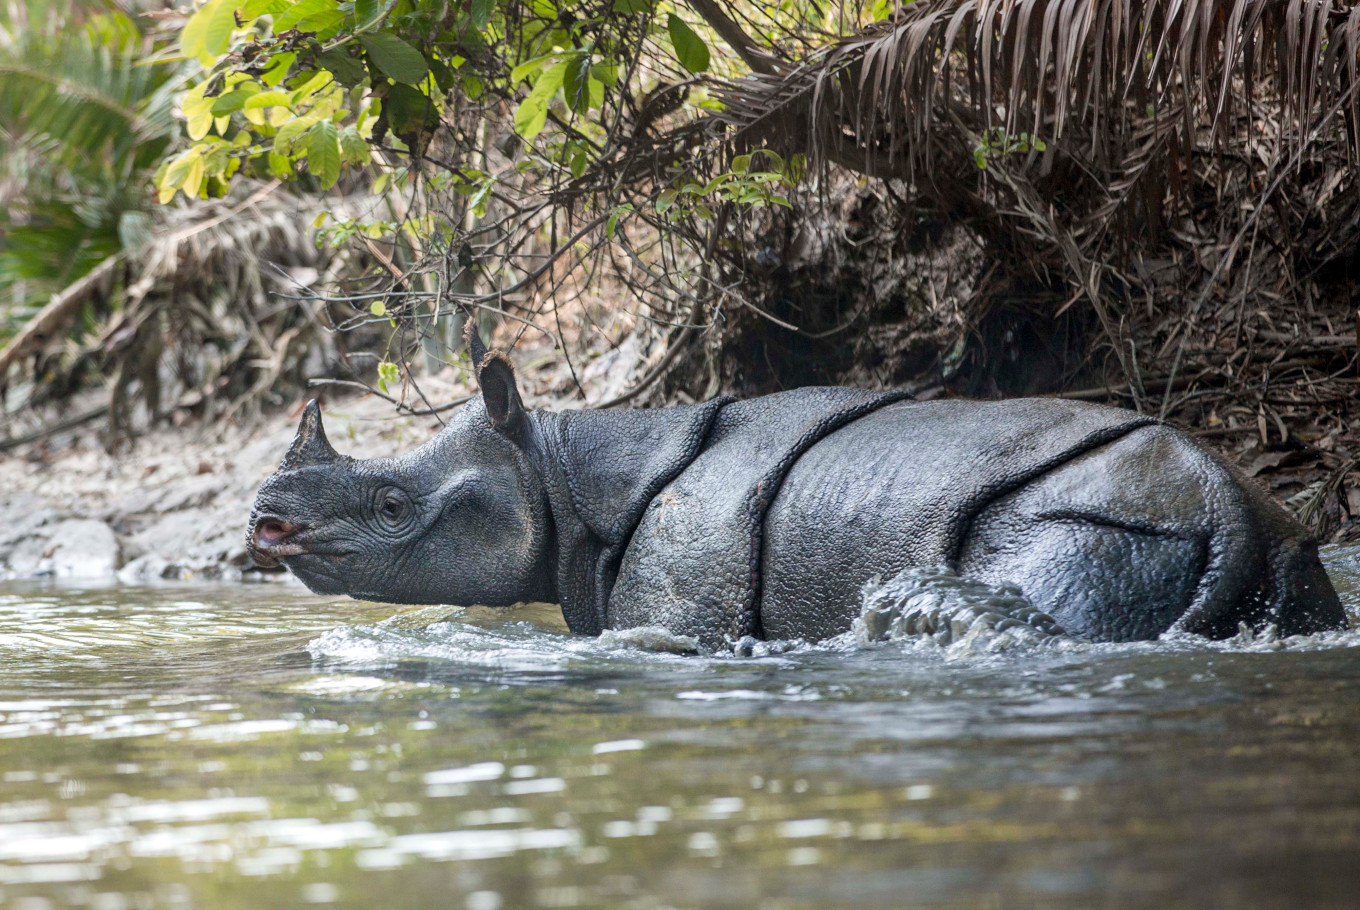 'Javan Rhino Expedition' photography journal aims to spread awareness